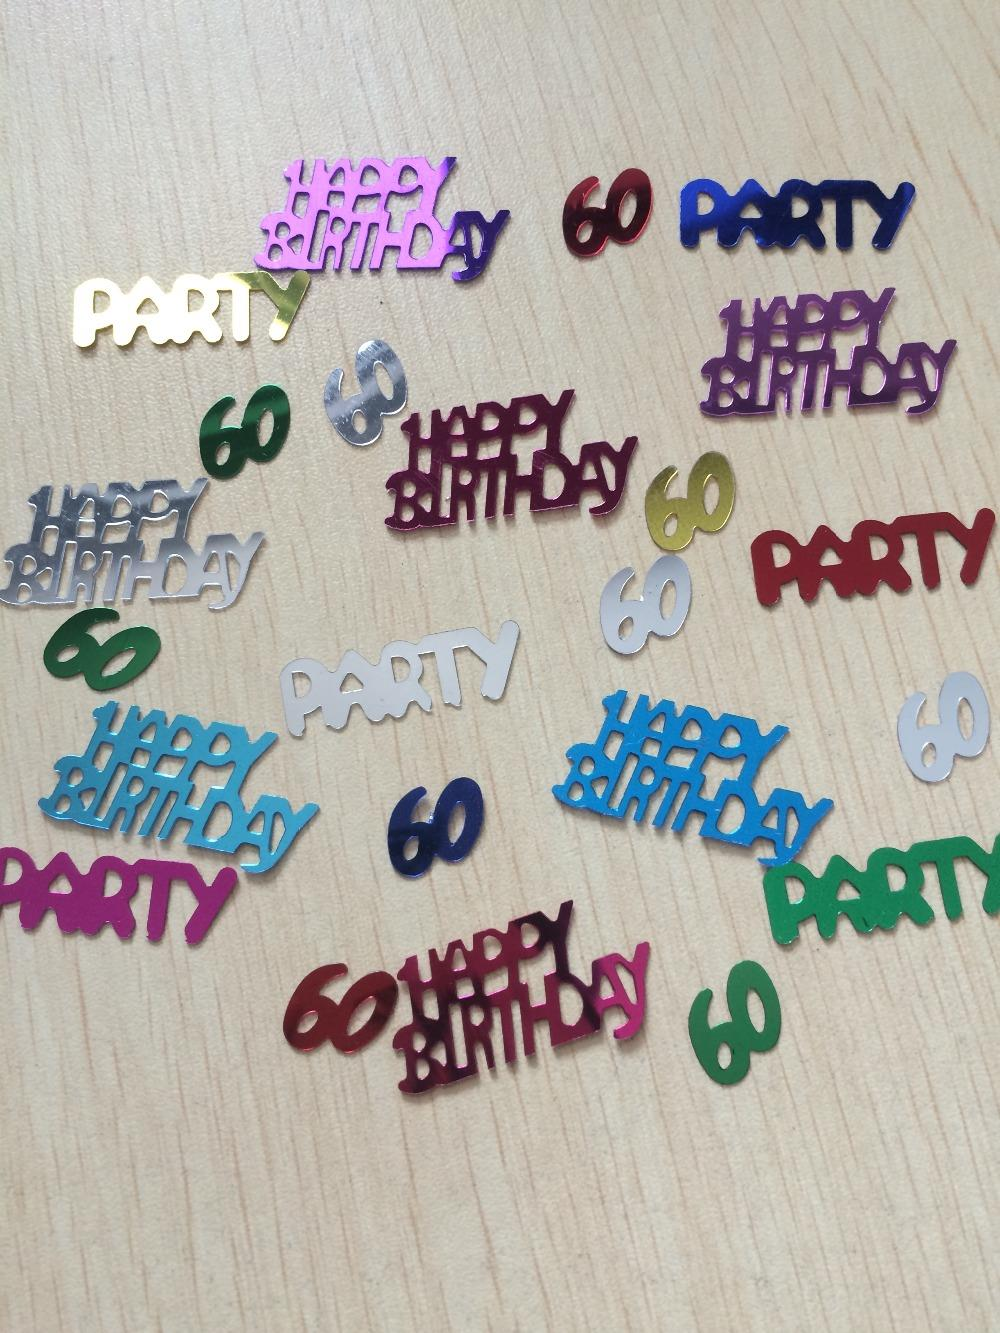 50g Female Women Mother Happy Aged 60th Birthday Party Decoration Scatter Number 60 Pink Silver Sparkle Foil Sprinkles Confetti In Banners